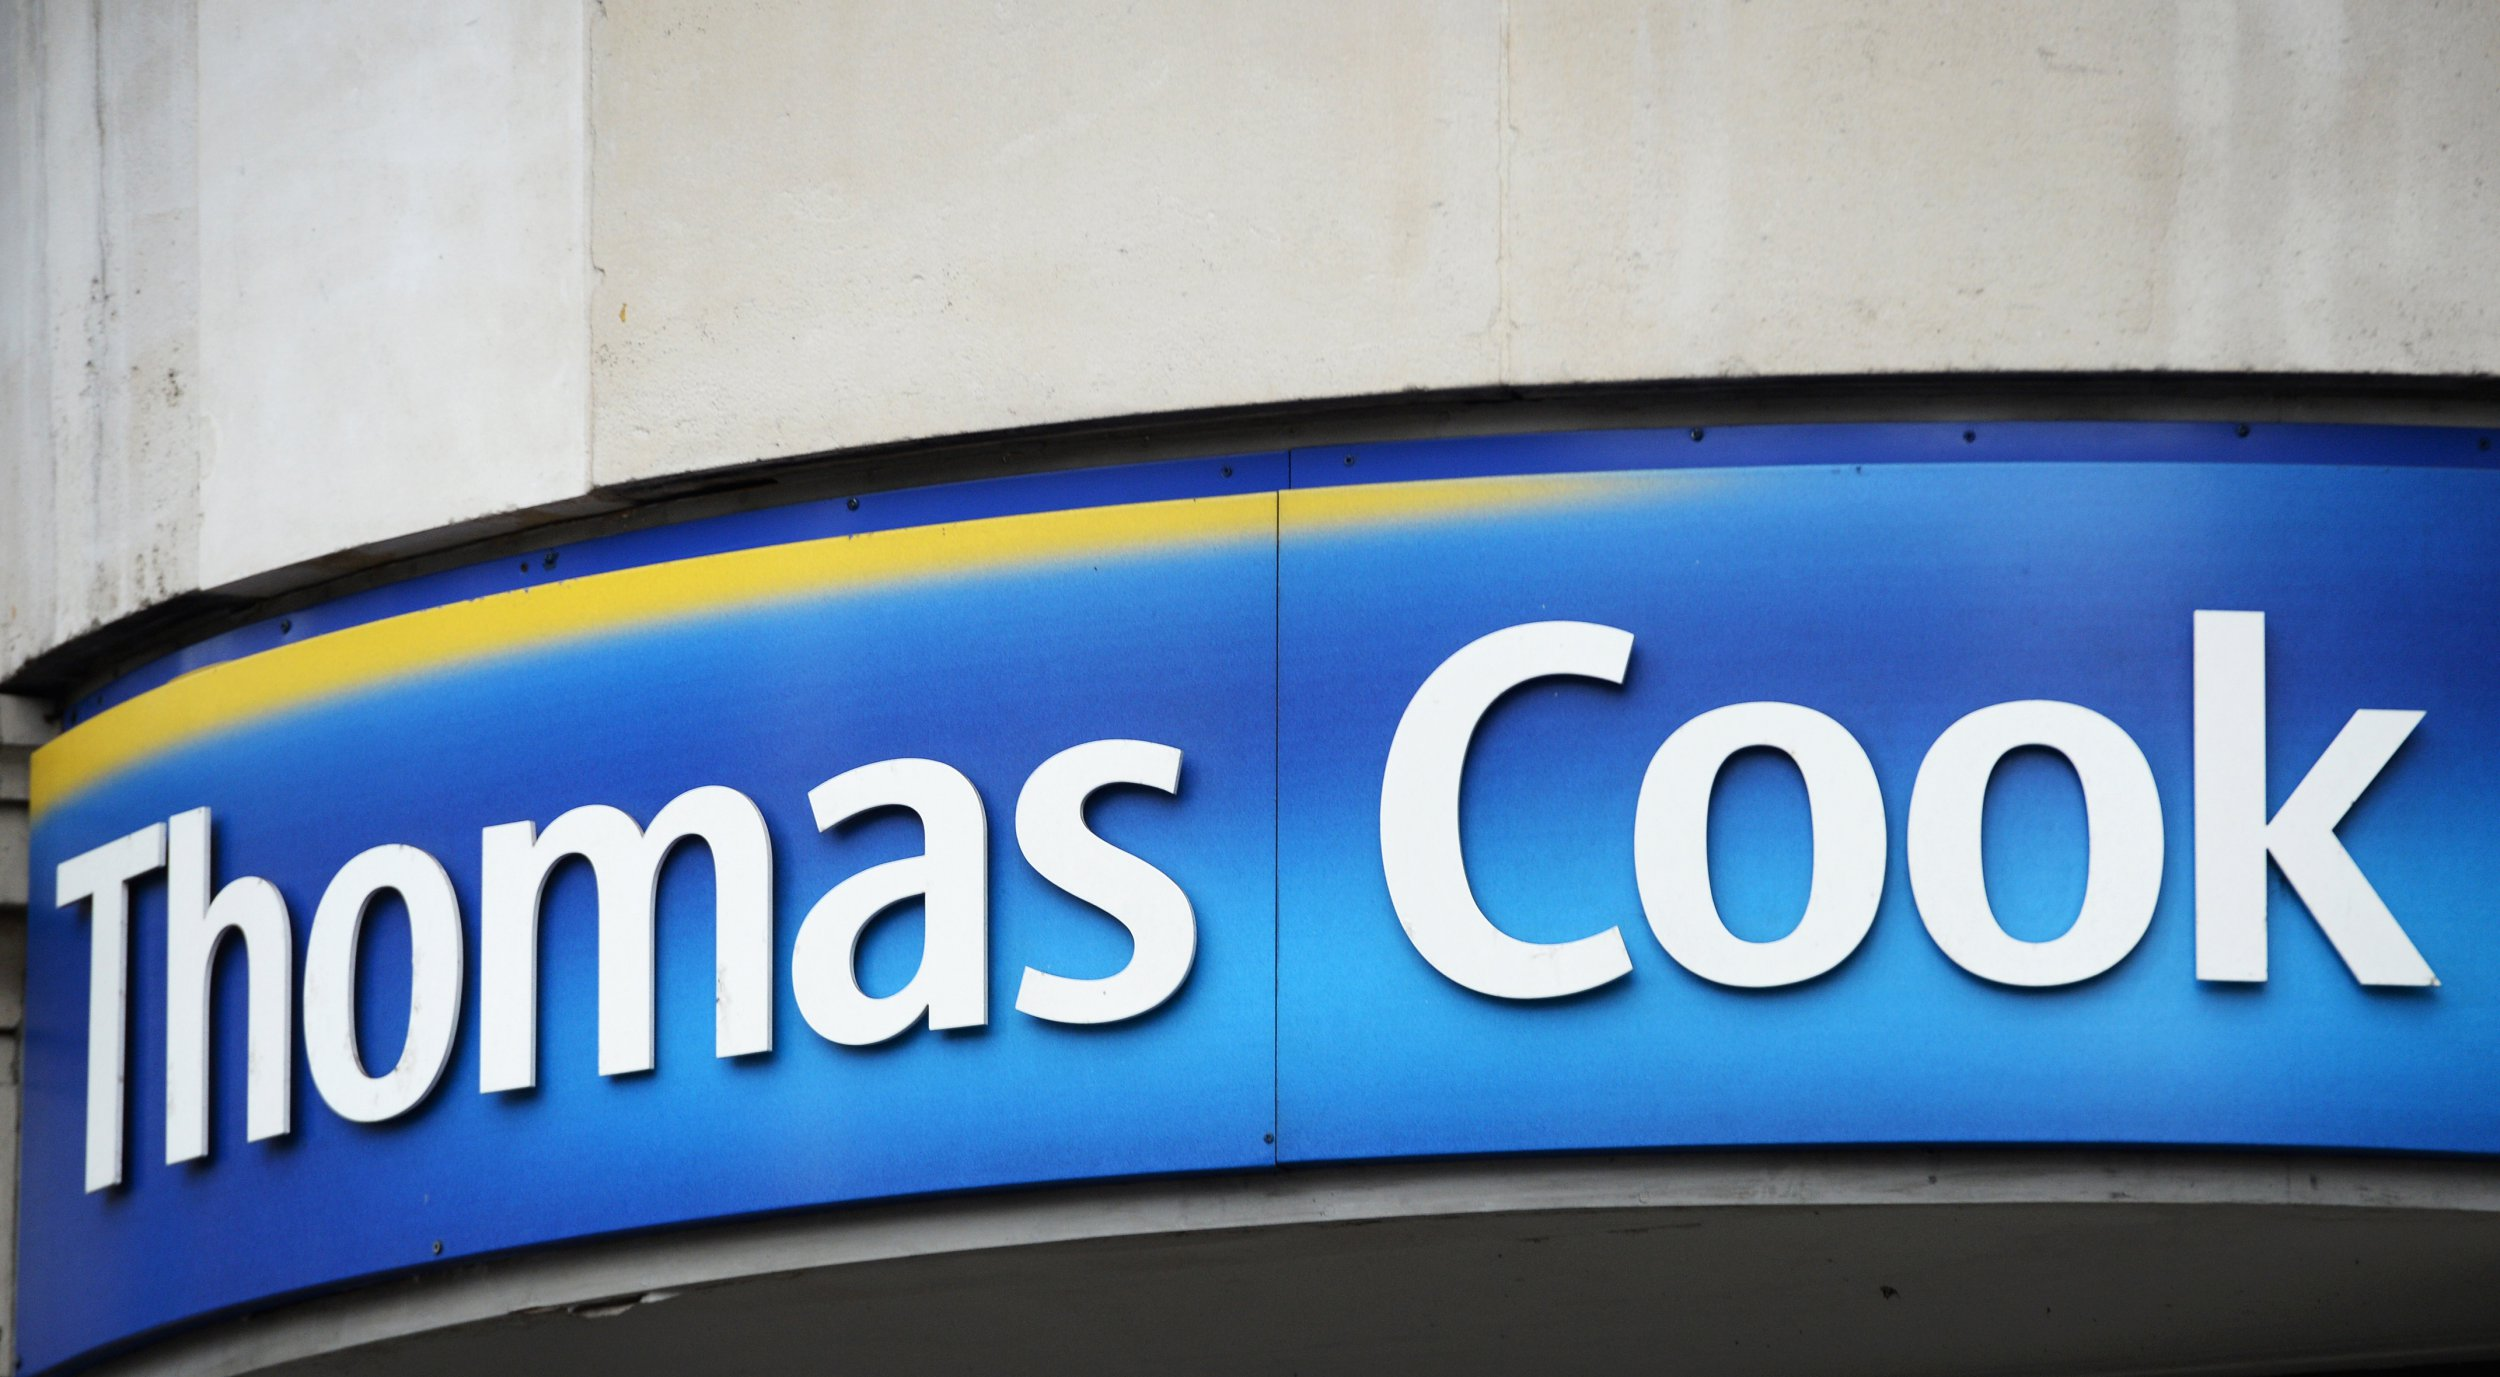 epa06917575 (FILE) - A logo of Thomas Cook is seen in central London, Britain, 26 November 2014 (reissued 29 July 2018). Thomas Cook on 29 July 2018 announced it was cancelling its trips to animal parks such as SeaWorld or Loro Parque where orcas, or killer whales, are held captive as an attraction. The decision was taken after a customer survey's result stressing the importance of animal welfare being taken seriously. EPA/FACUNDO ARRIZABALAGA *** Local Caption *** 53709111